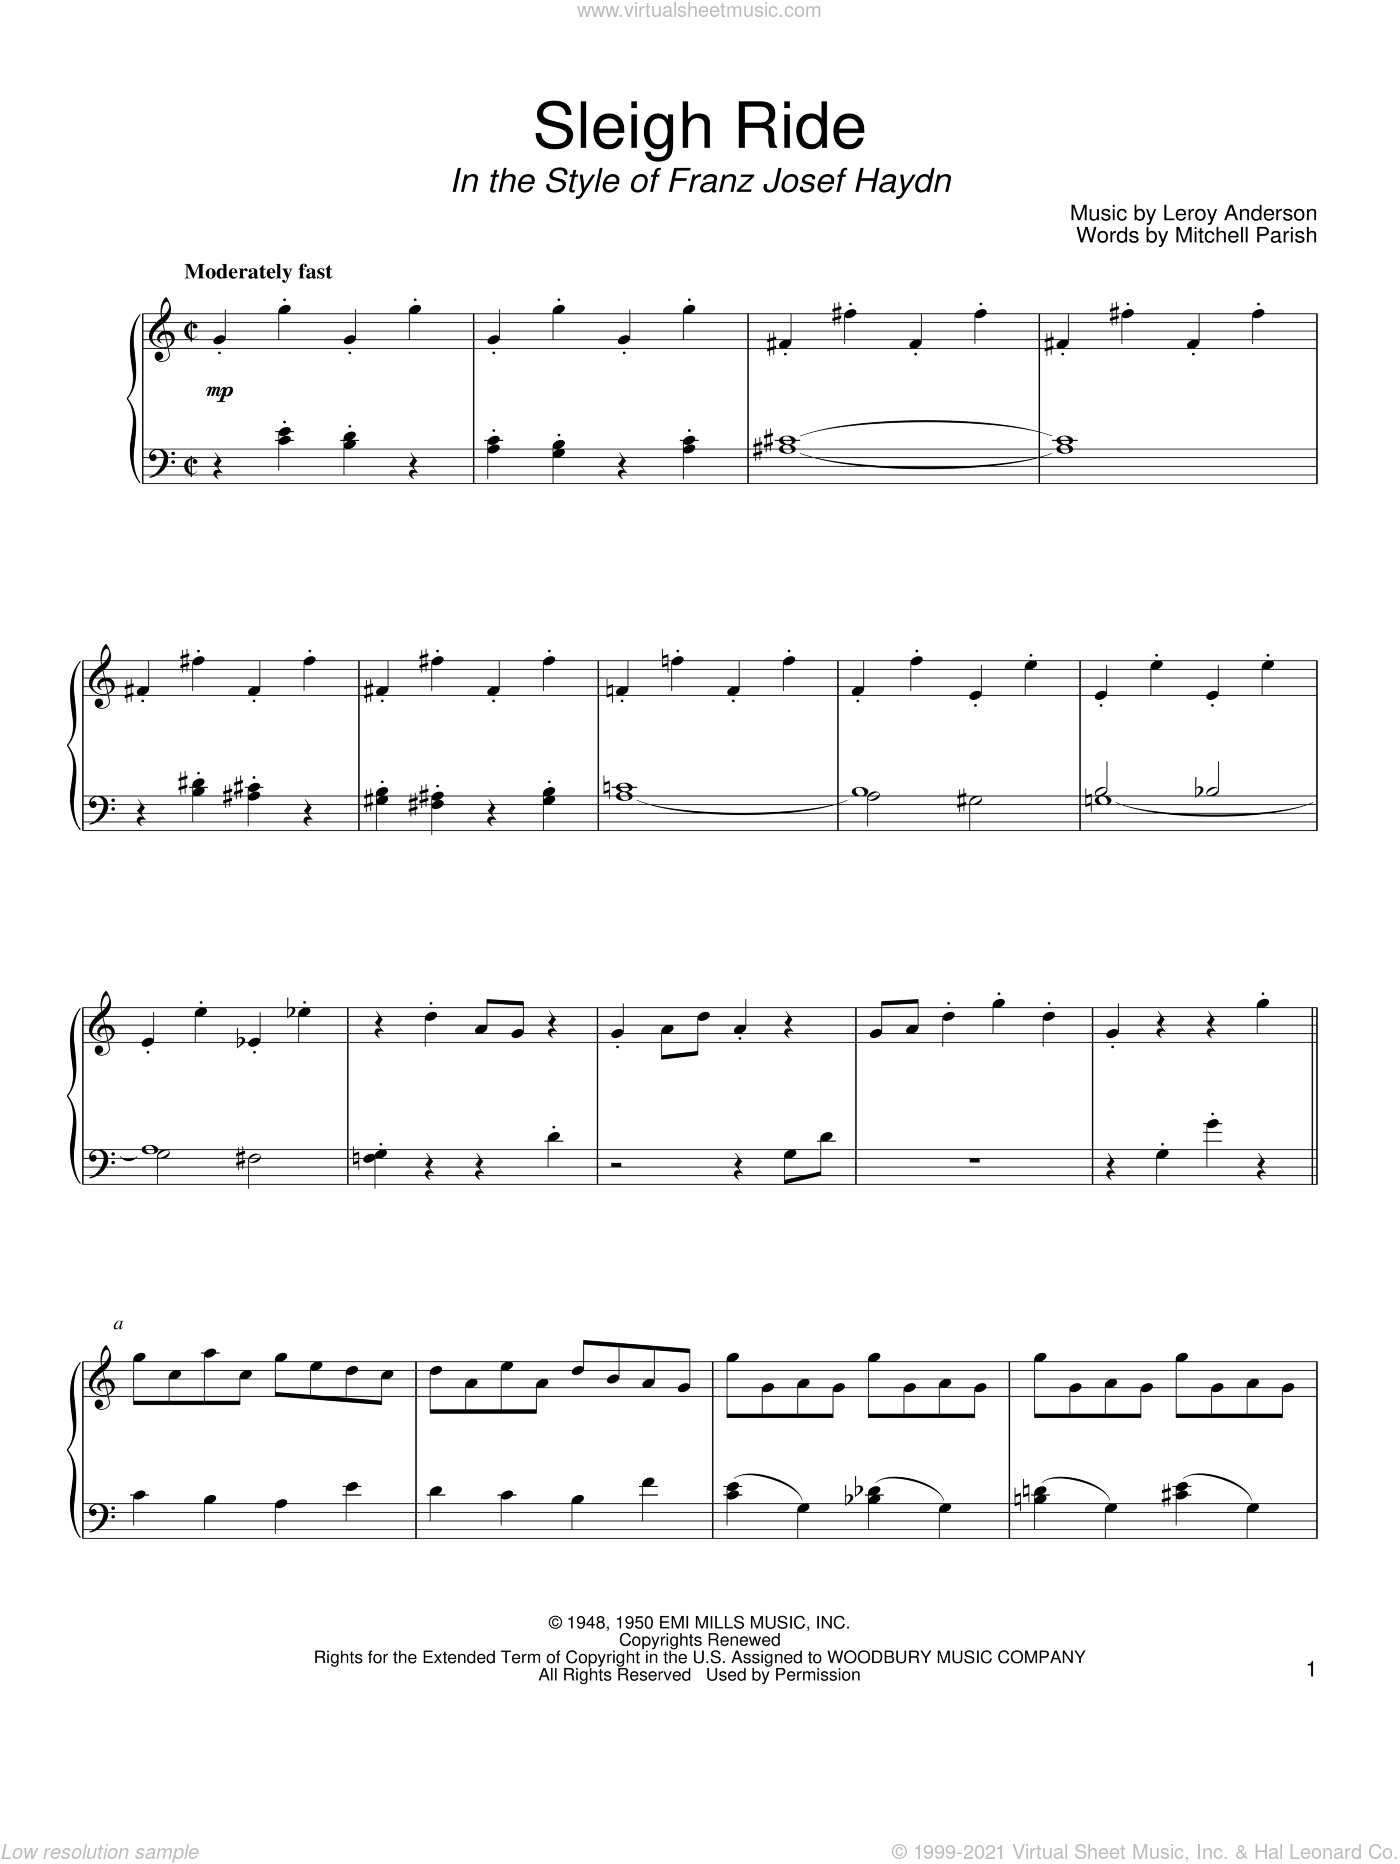 Sleigh Ride sheet music for piano solo by Mitchell Parish